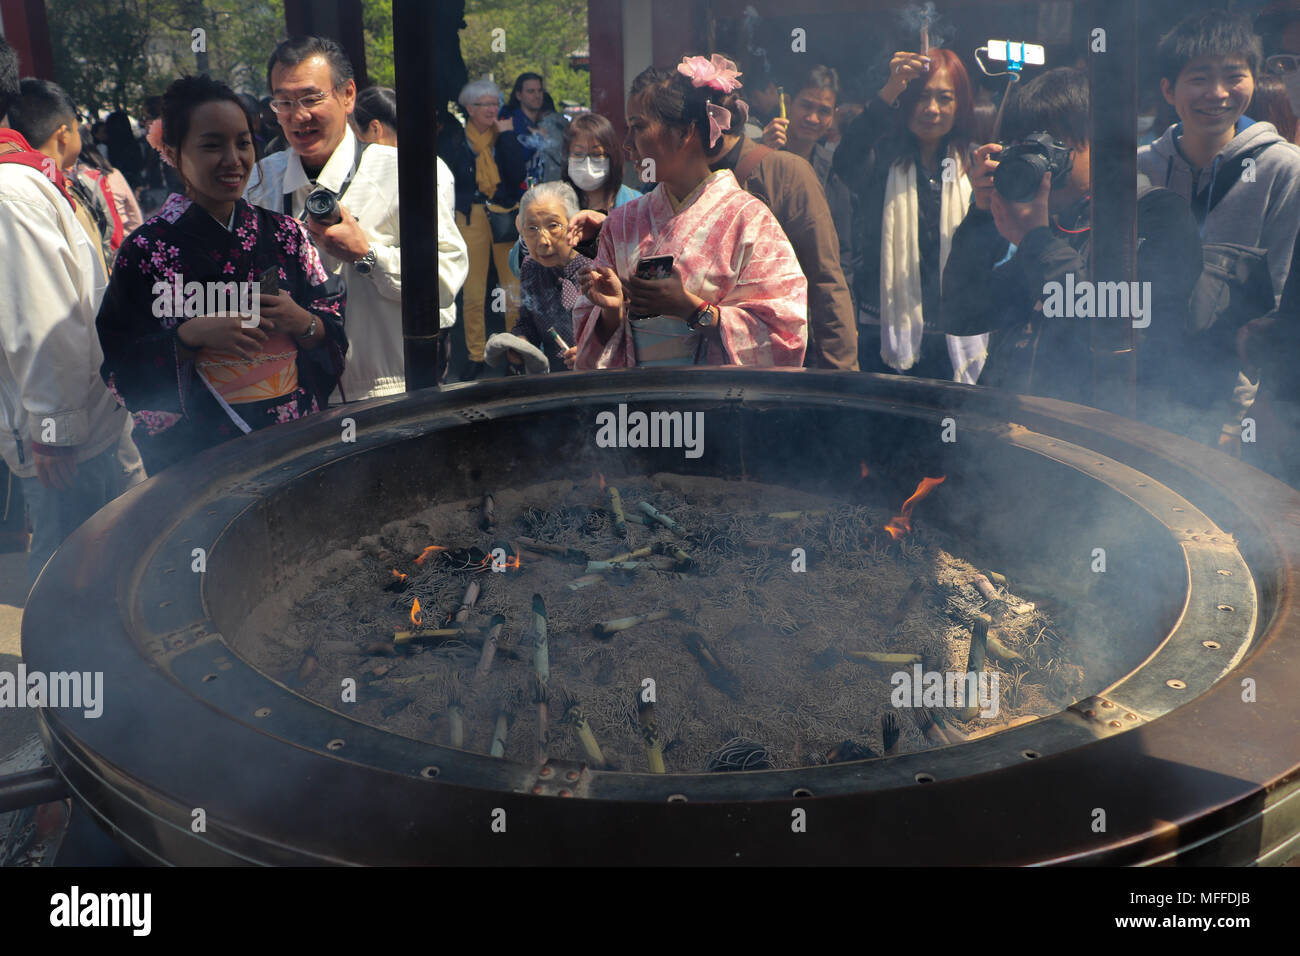 People gather around the Jokoro or incense burner at the Sensoji Temple in Tokyo, Japan. They waft the smoke over themselves, to purify, speed healing. - Stock Image